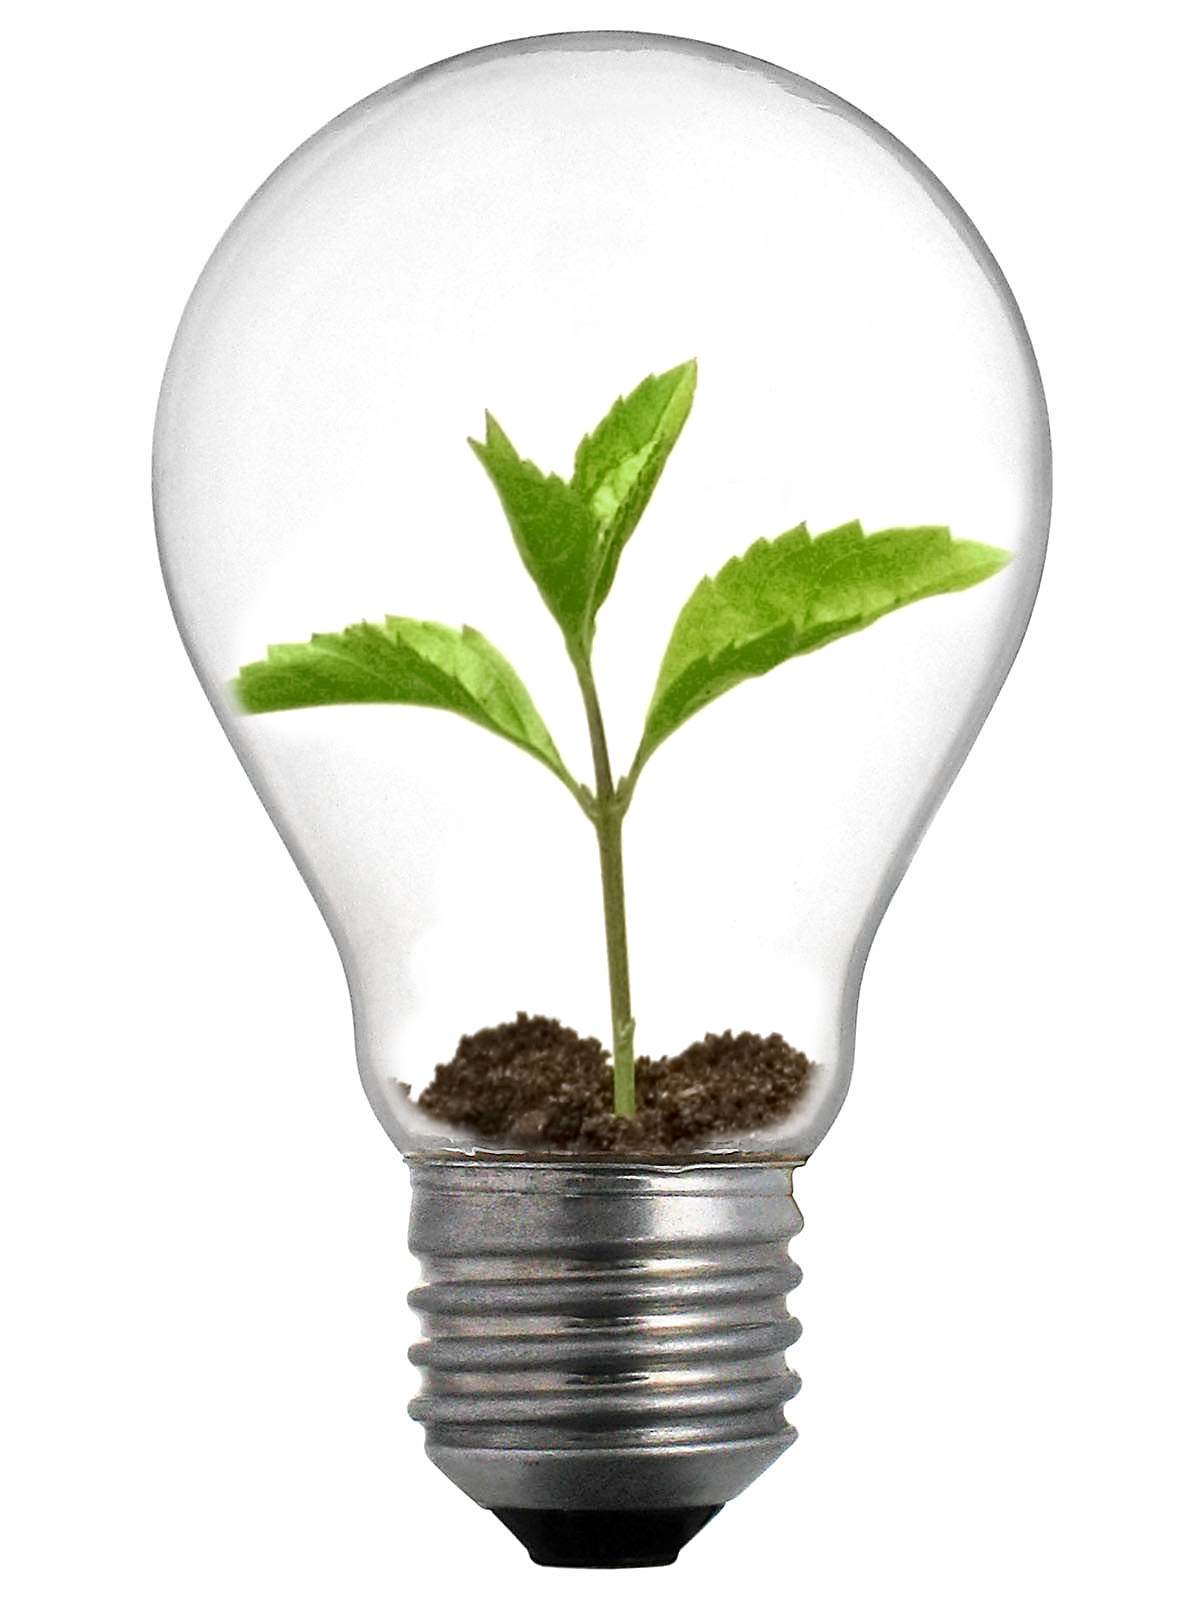 Canada S Nanny State Dim Idea To Ban 100 And 75 Watt Incandescent Light Bulbs On January 1 2014